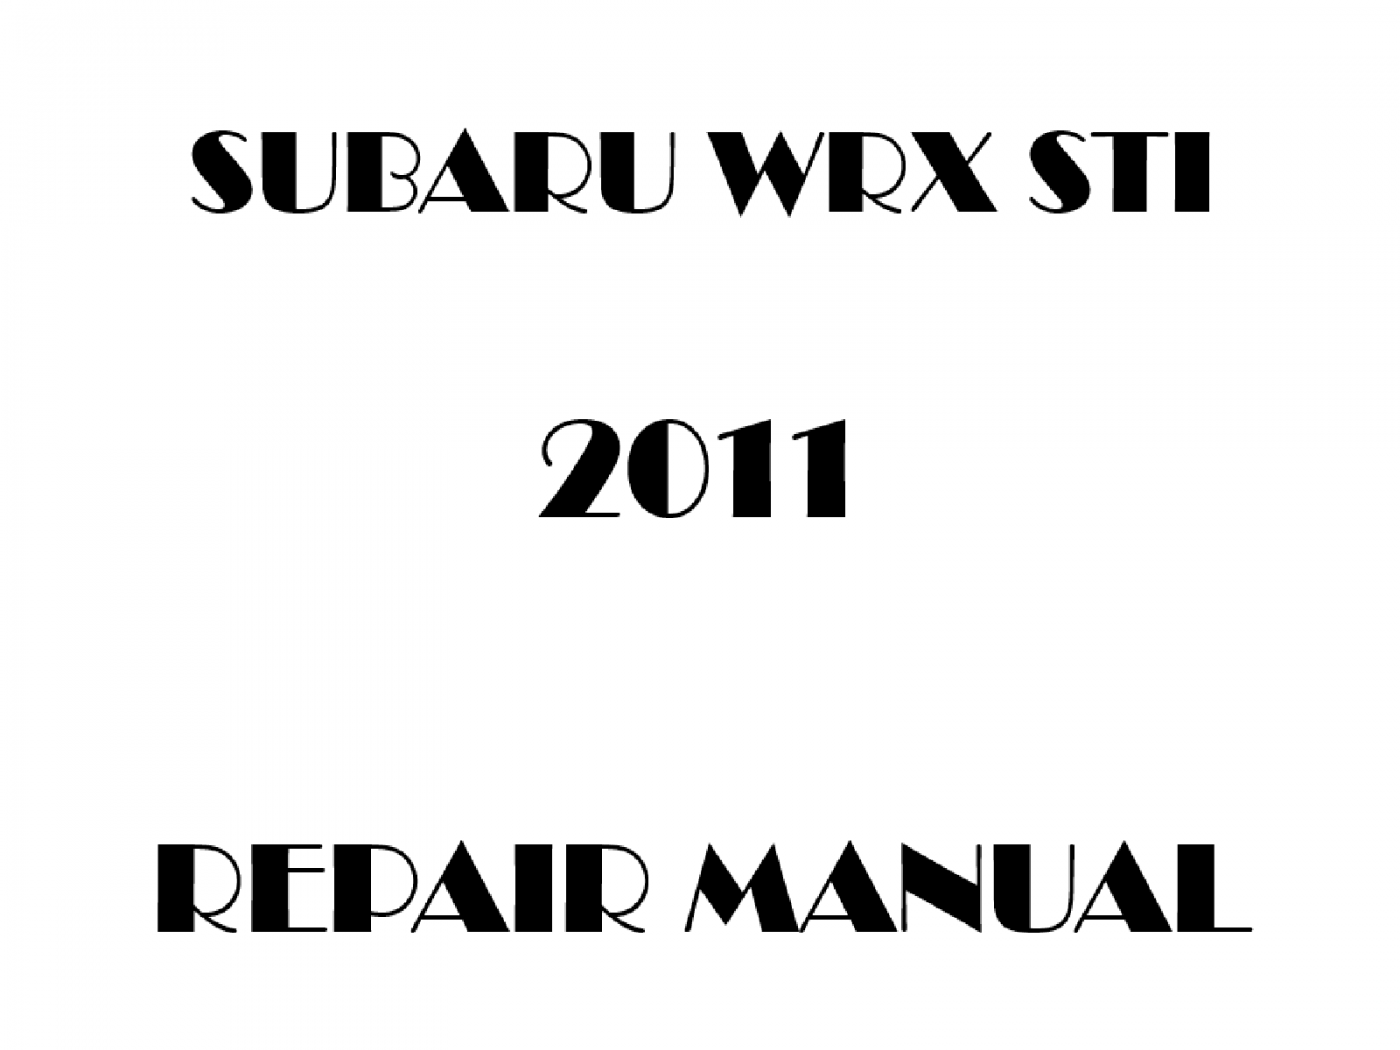 2011 Subaru Impreza WRX STI repair manual